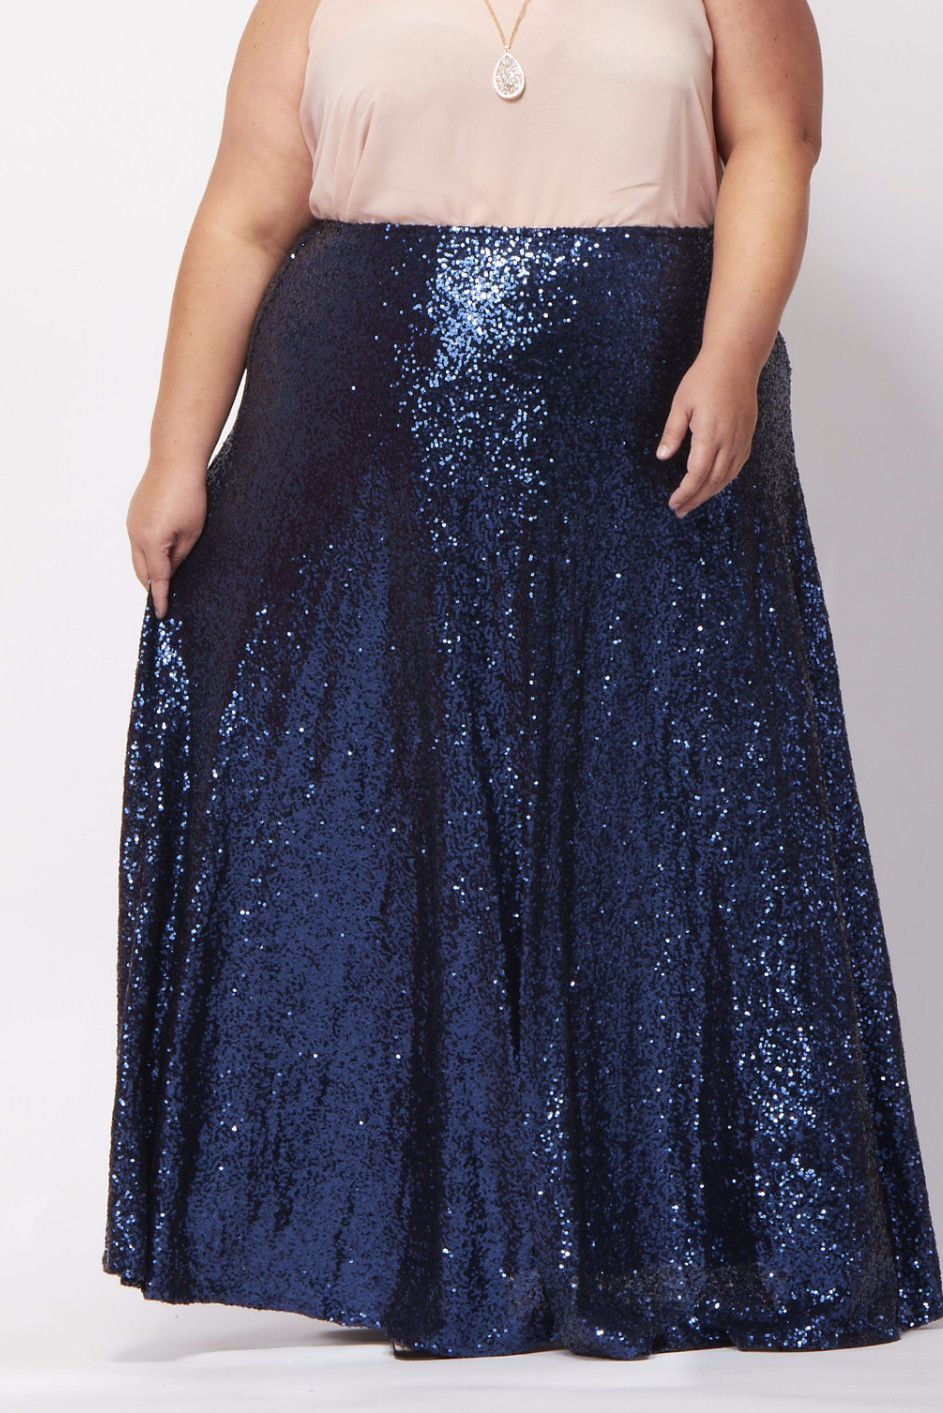 5e42d76d9 There's no doubt you'll be turning heads, maybe even breaking necks, in  this glittering glamour maxi skirt! Be red-carpet ready anytime you put  this beauty ...